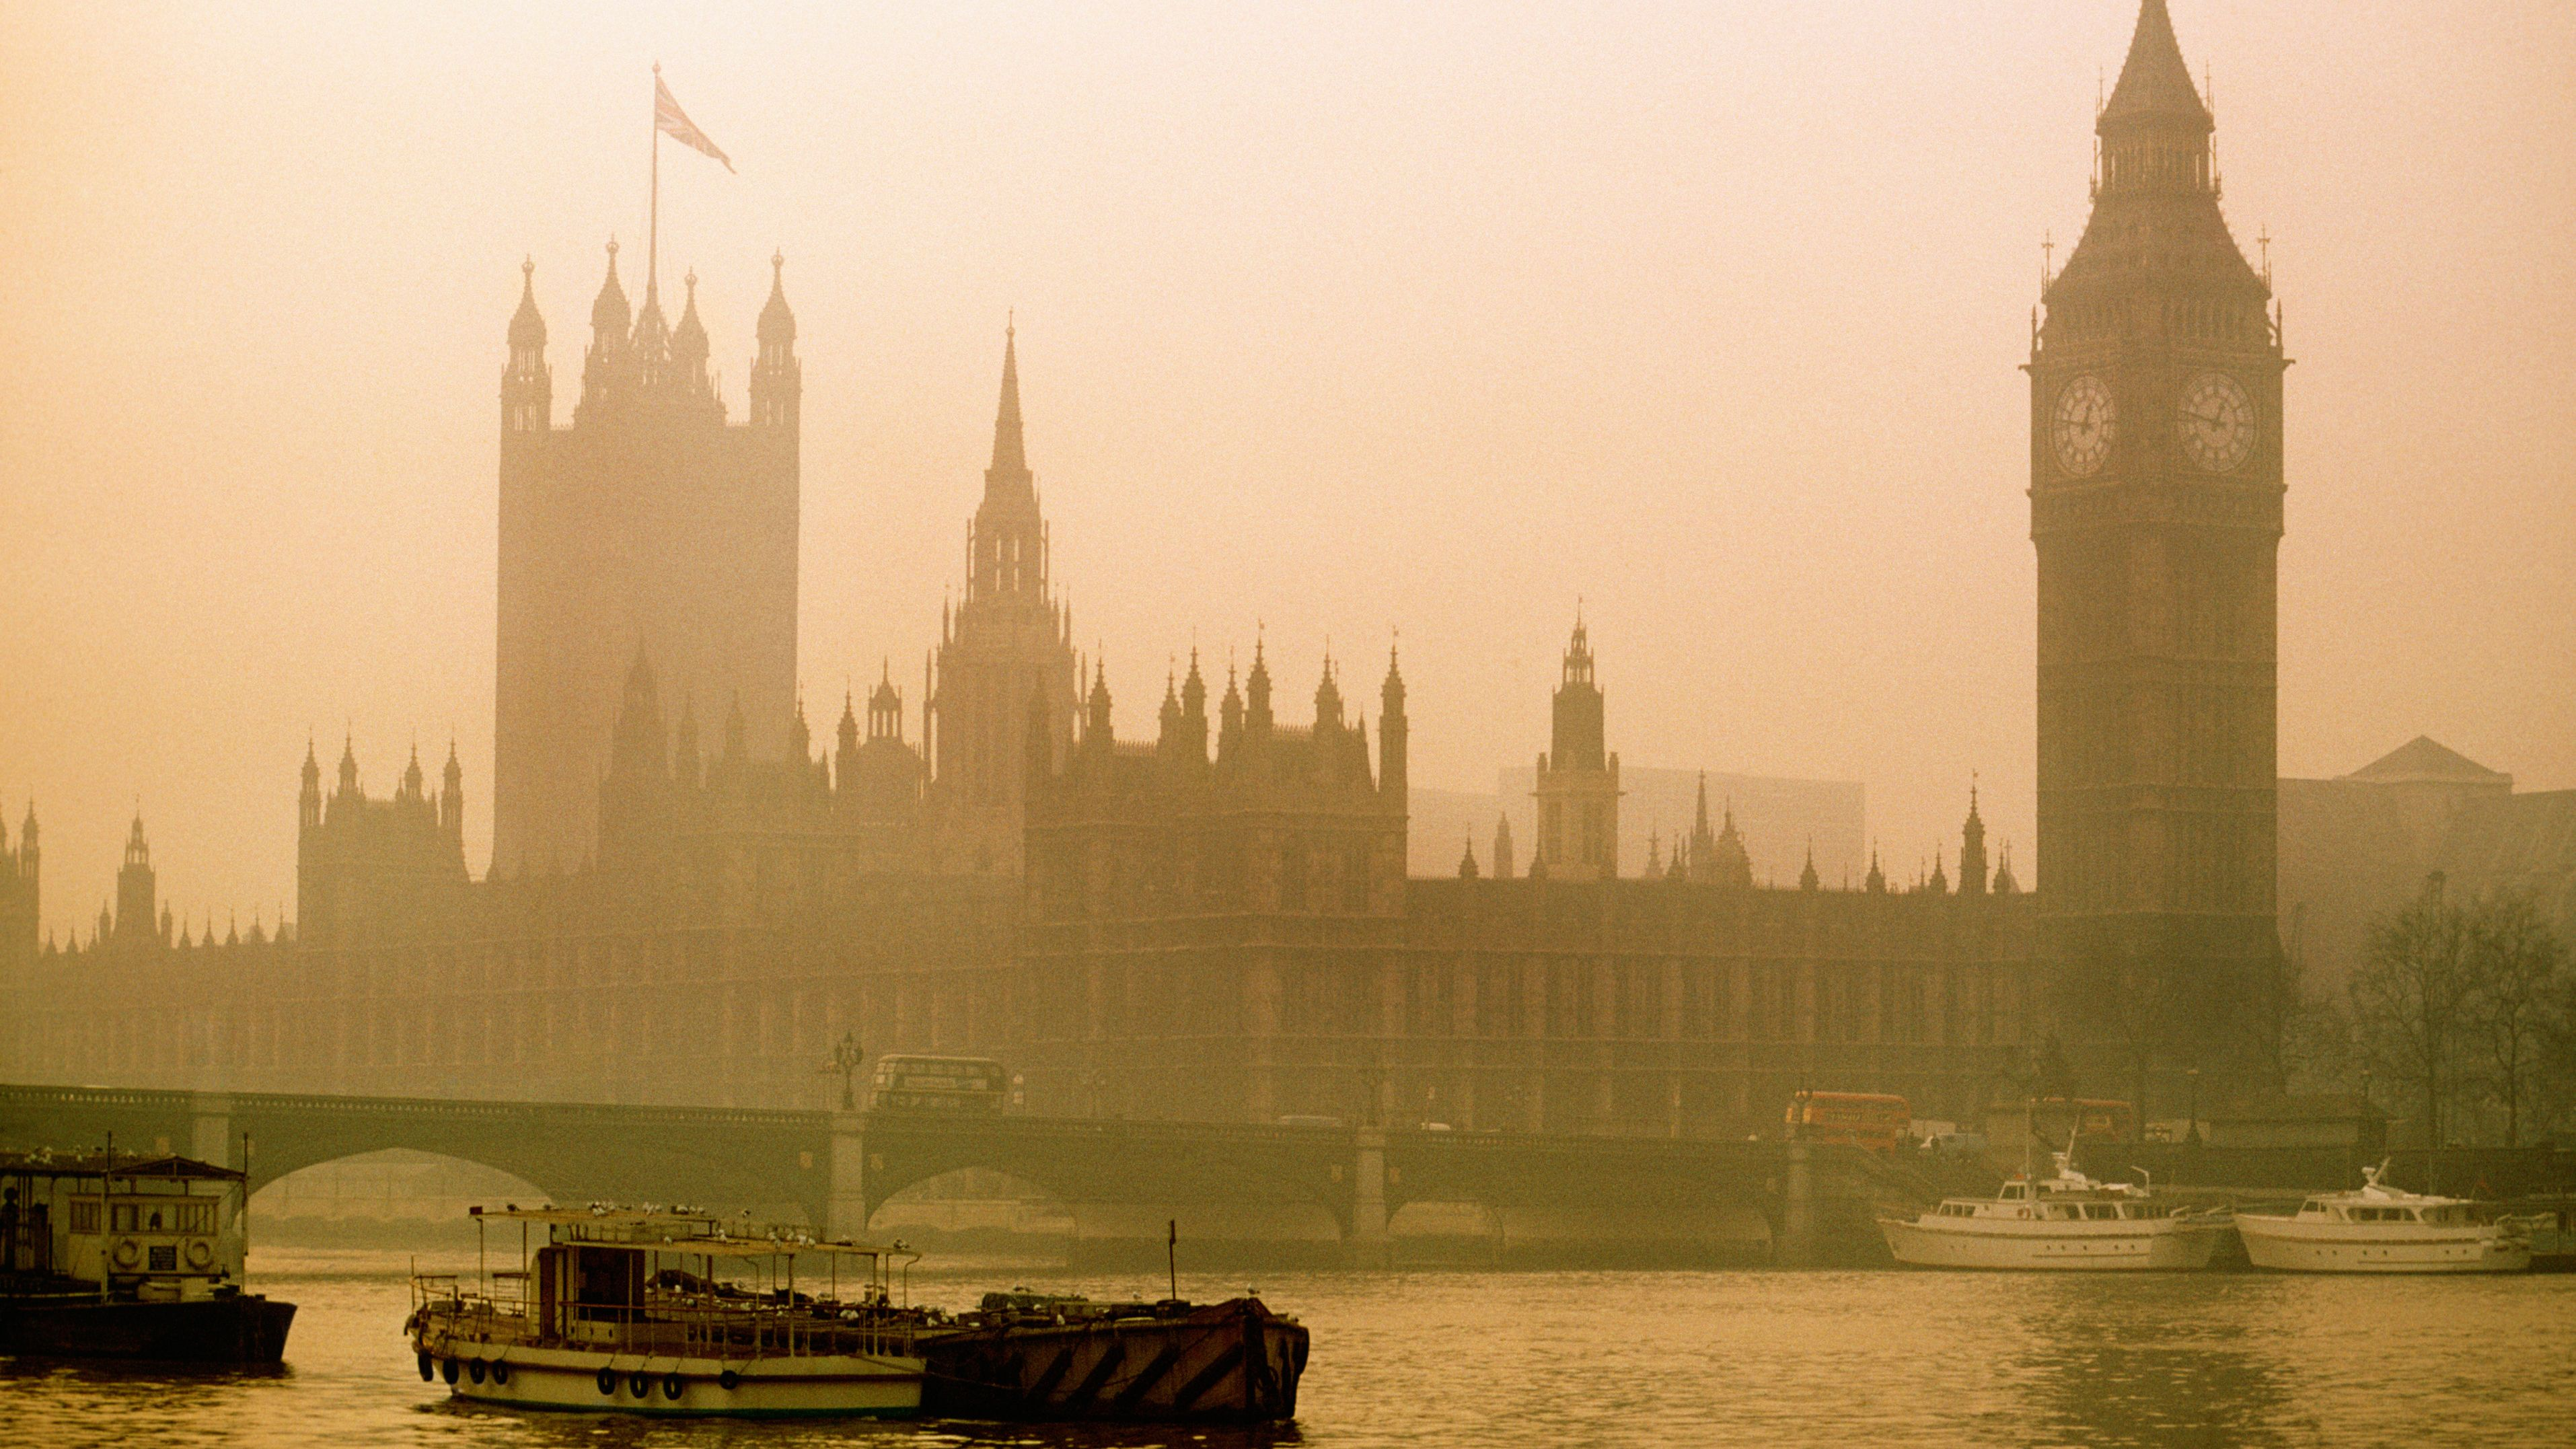 View of Westminster and Big Ben amidst fog, London, England